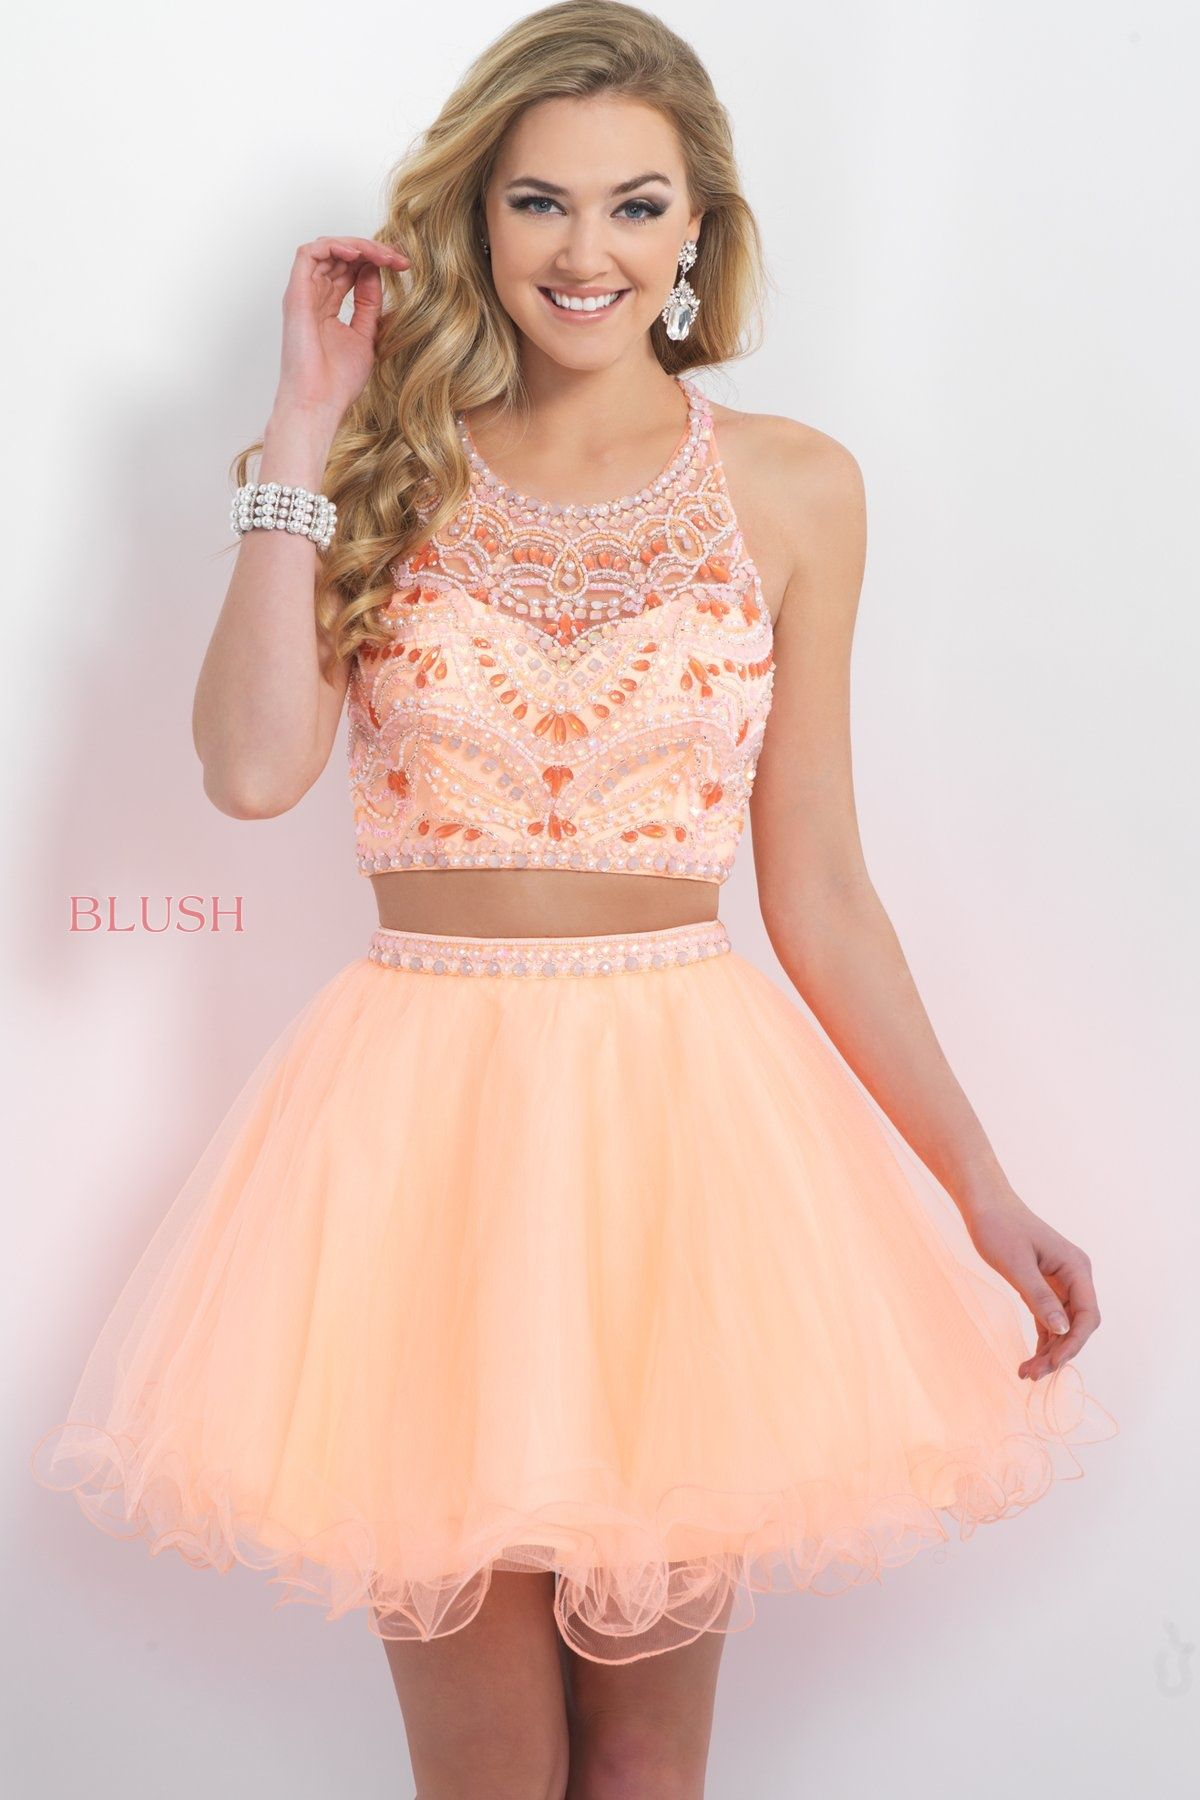 Homecoming dresses by Blush Prom Homecoming Style 10080 #BlushProm ...